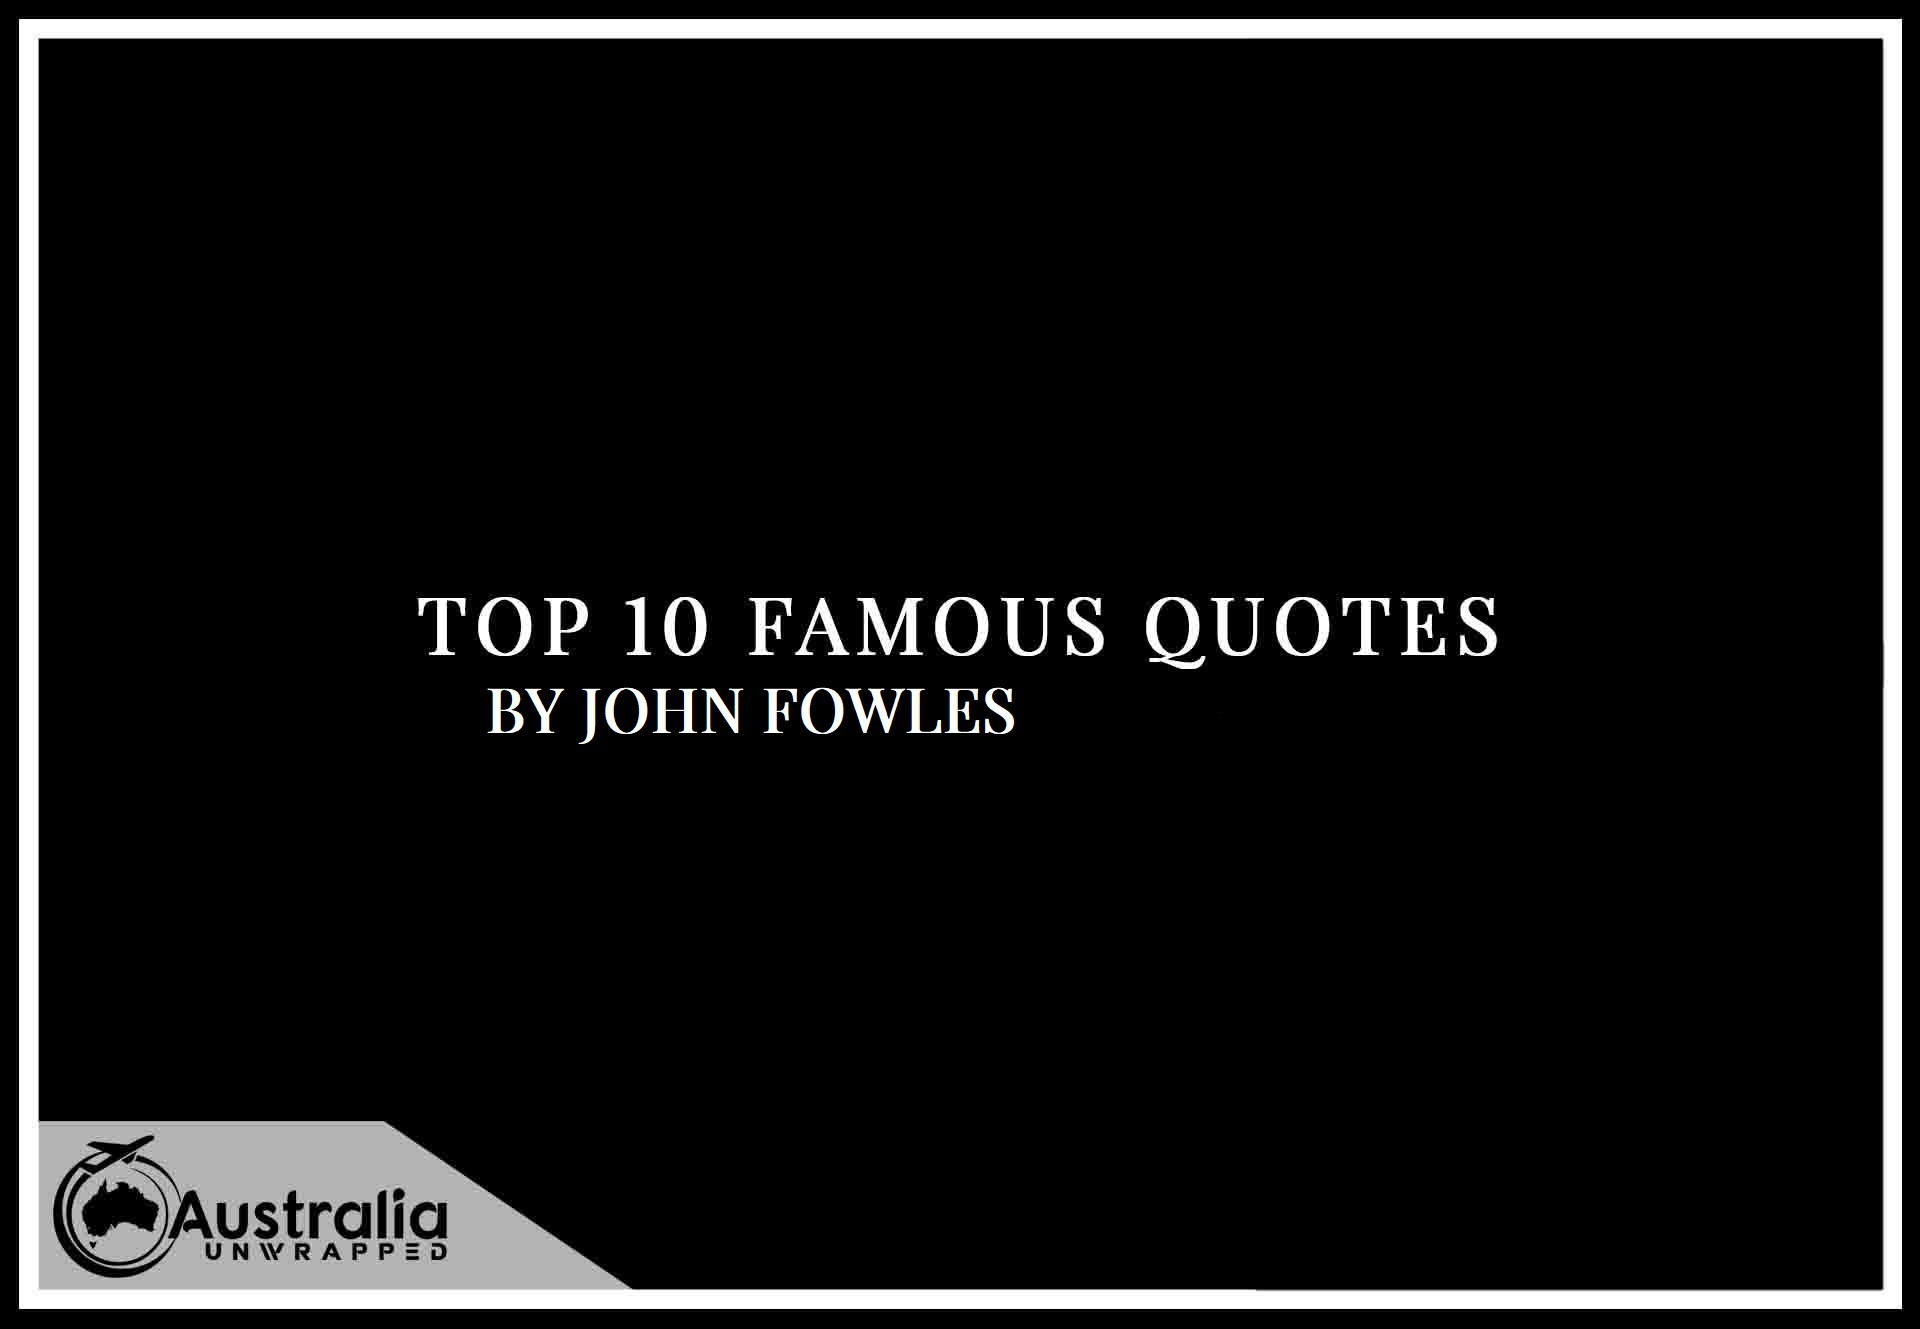 Top 10 Famous Quotes by Author John Fowles